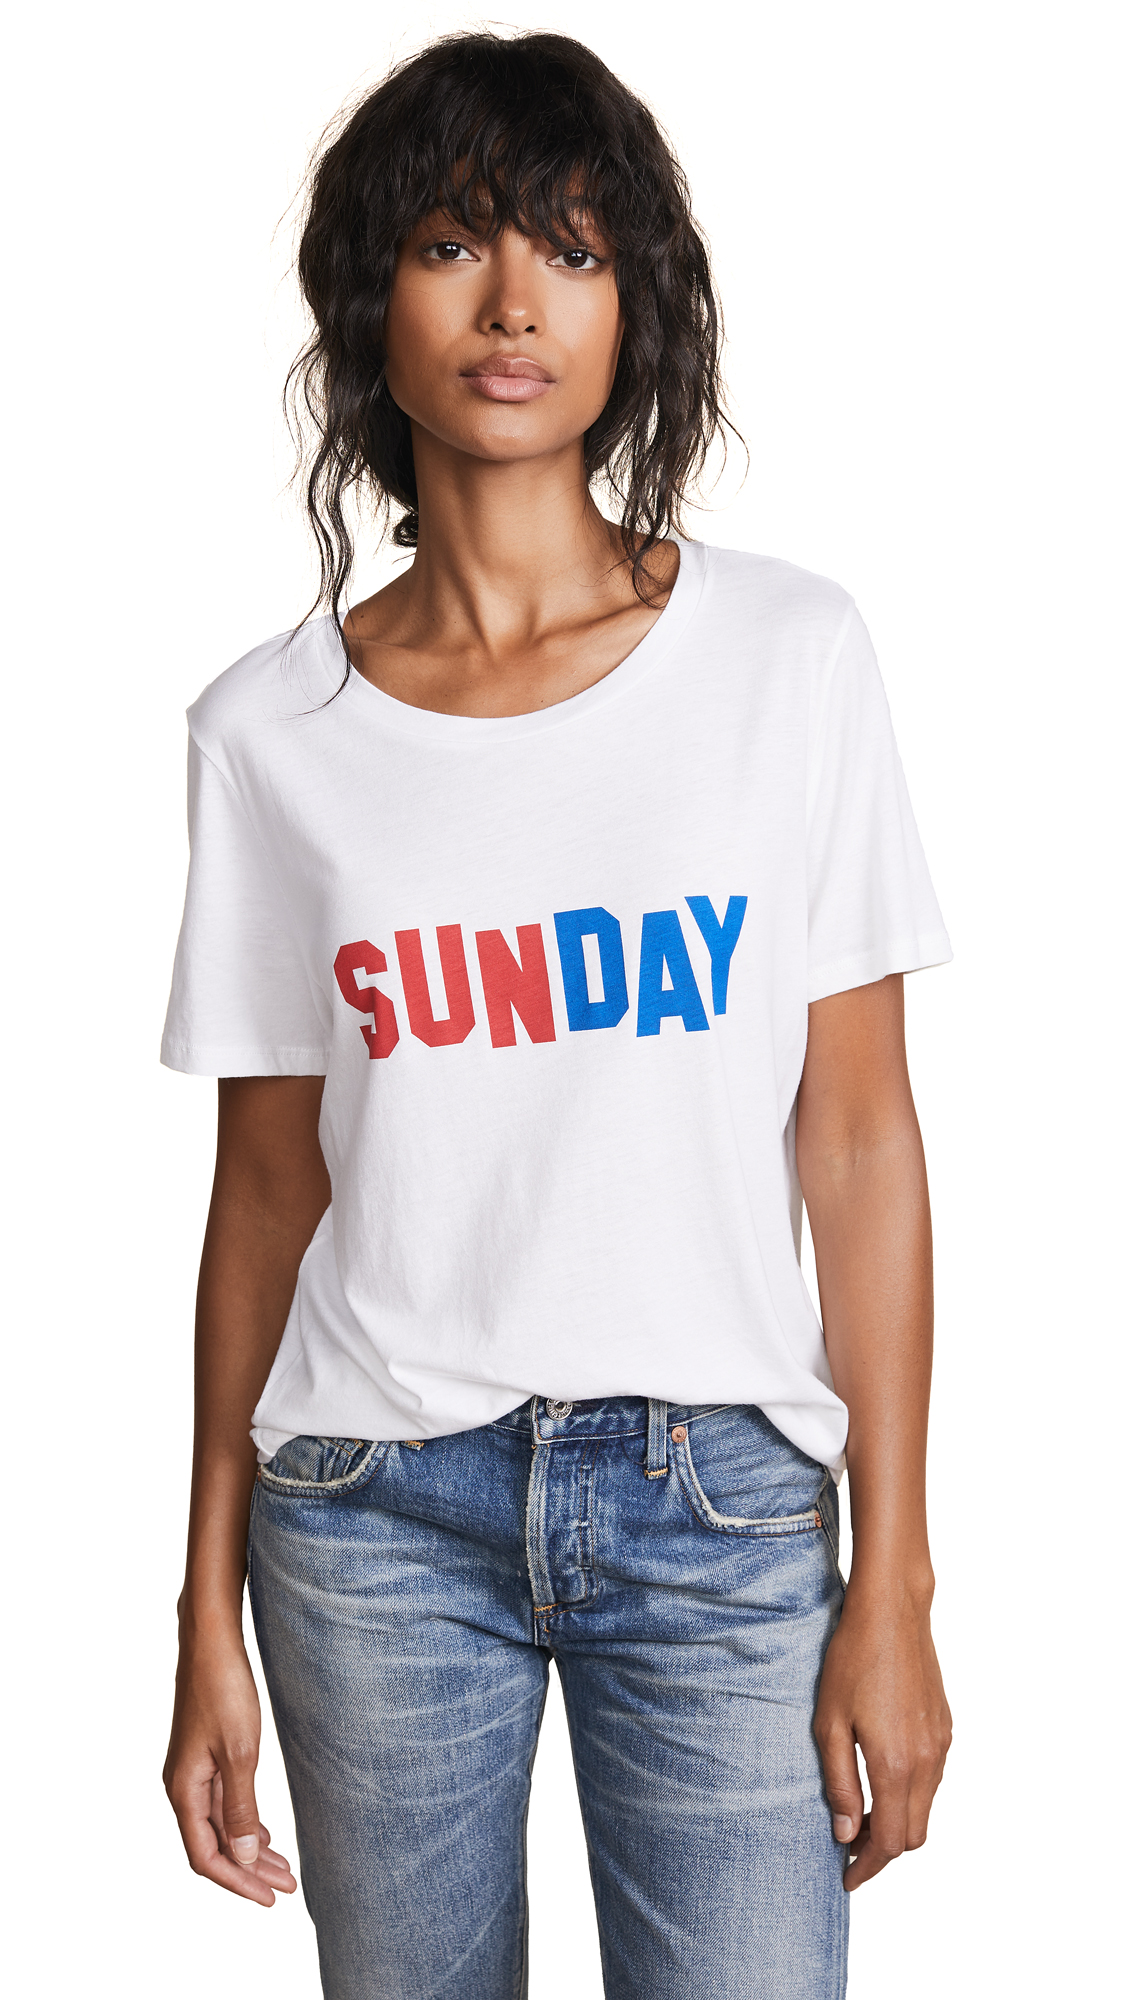 SOUTH PARADE LOLA SUNDAY TEE